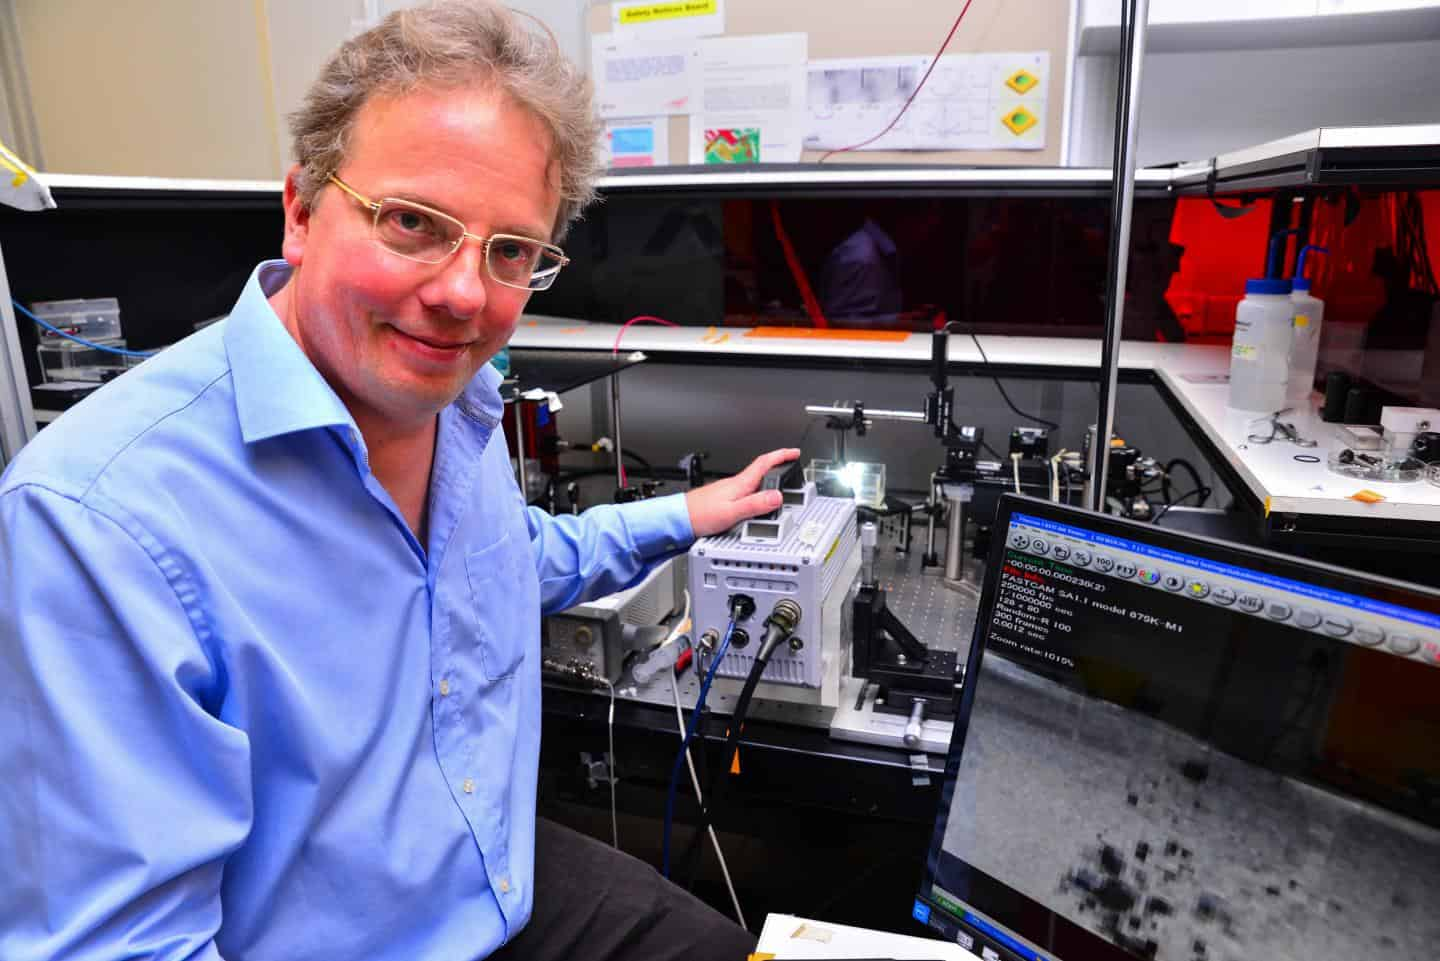 Claus-Dieter Ohl's team has developed a new ultrasound device that will allow for more accurate use of ultrasound to kill tumours, loosen blood clots and deliver drugs into targeted cells.